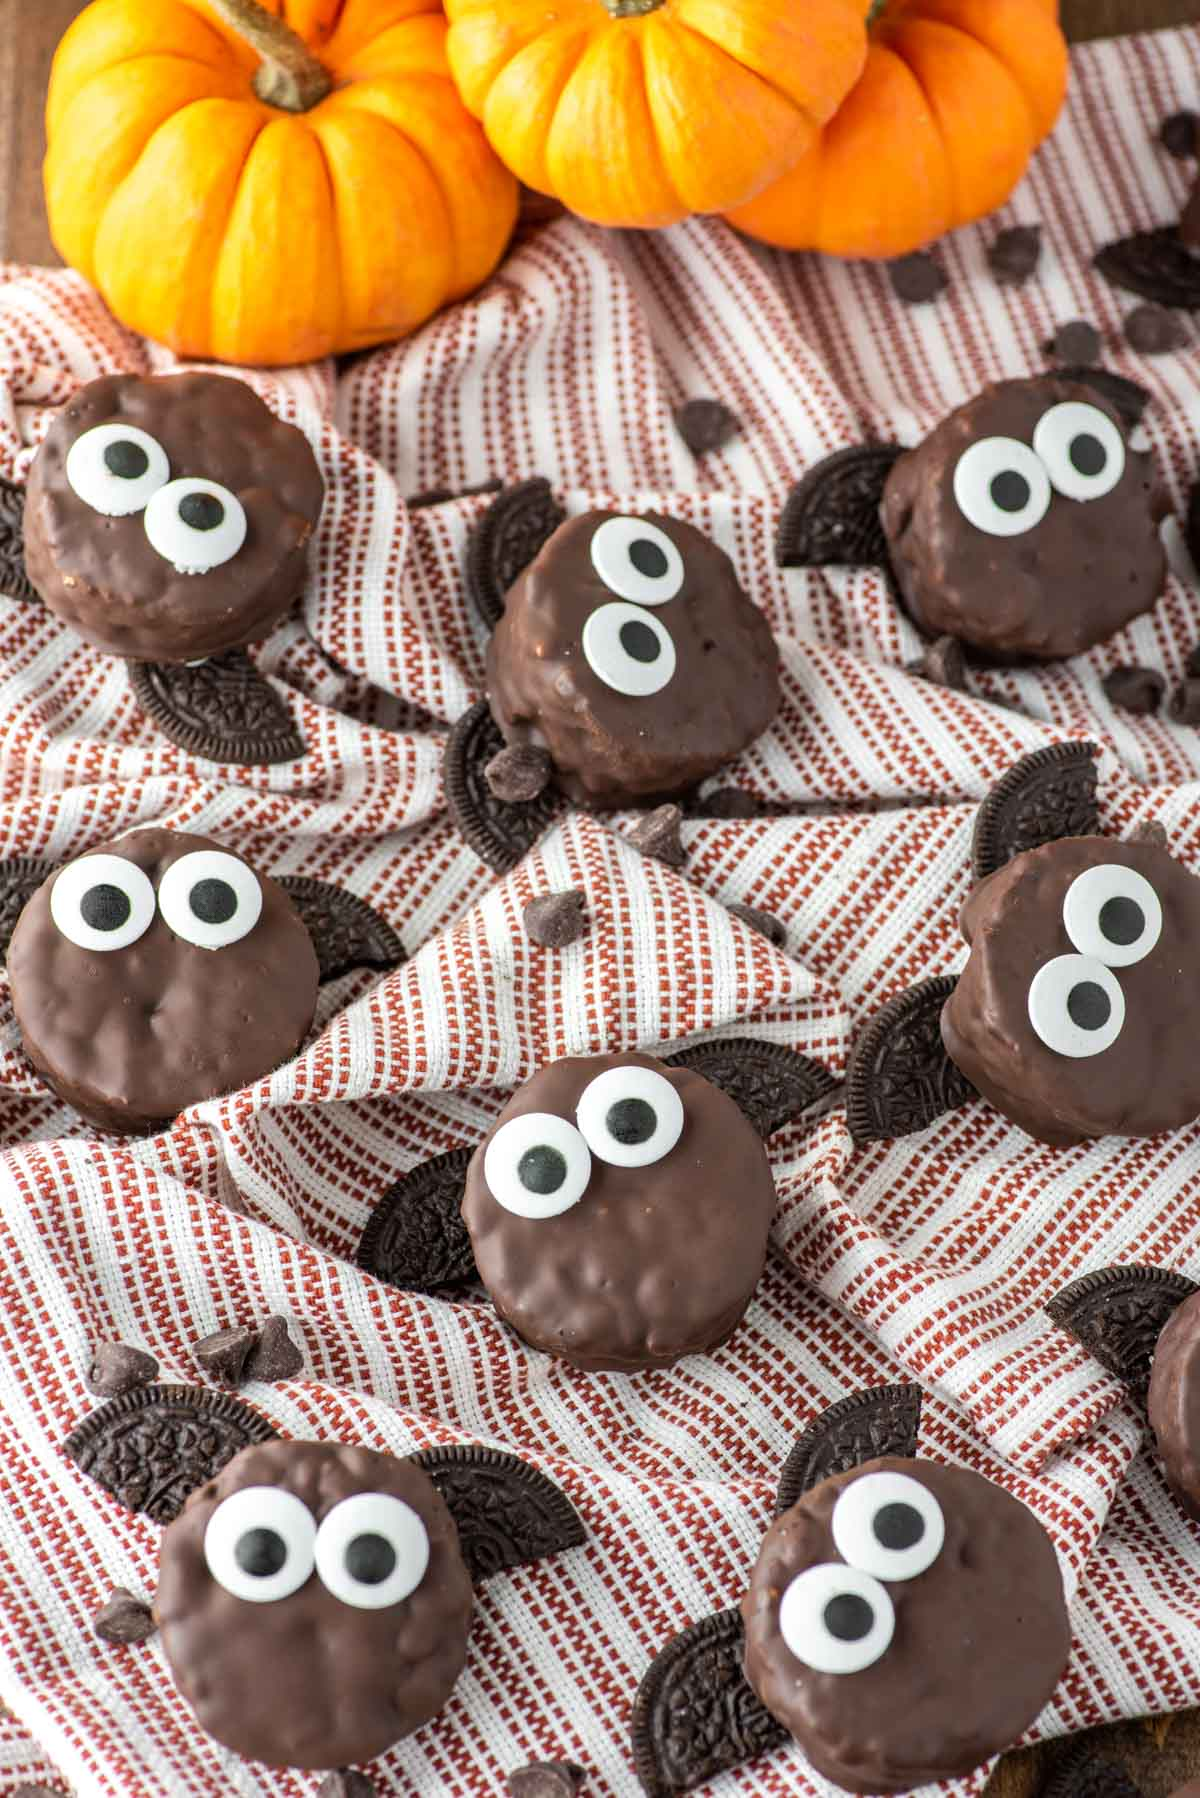 a top down view of chocolate covered circle rice krispies made to look like bats with large eyeballs